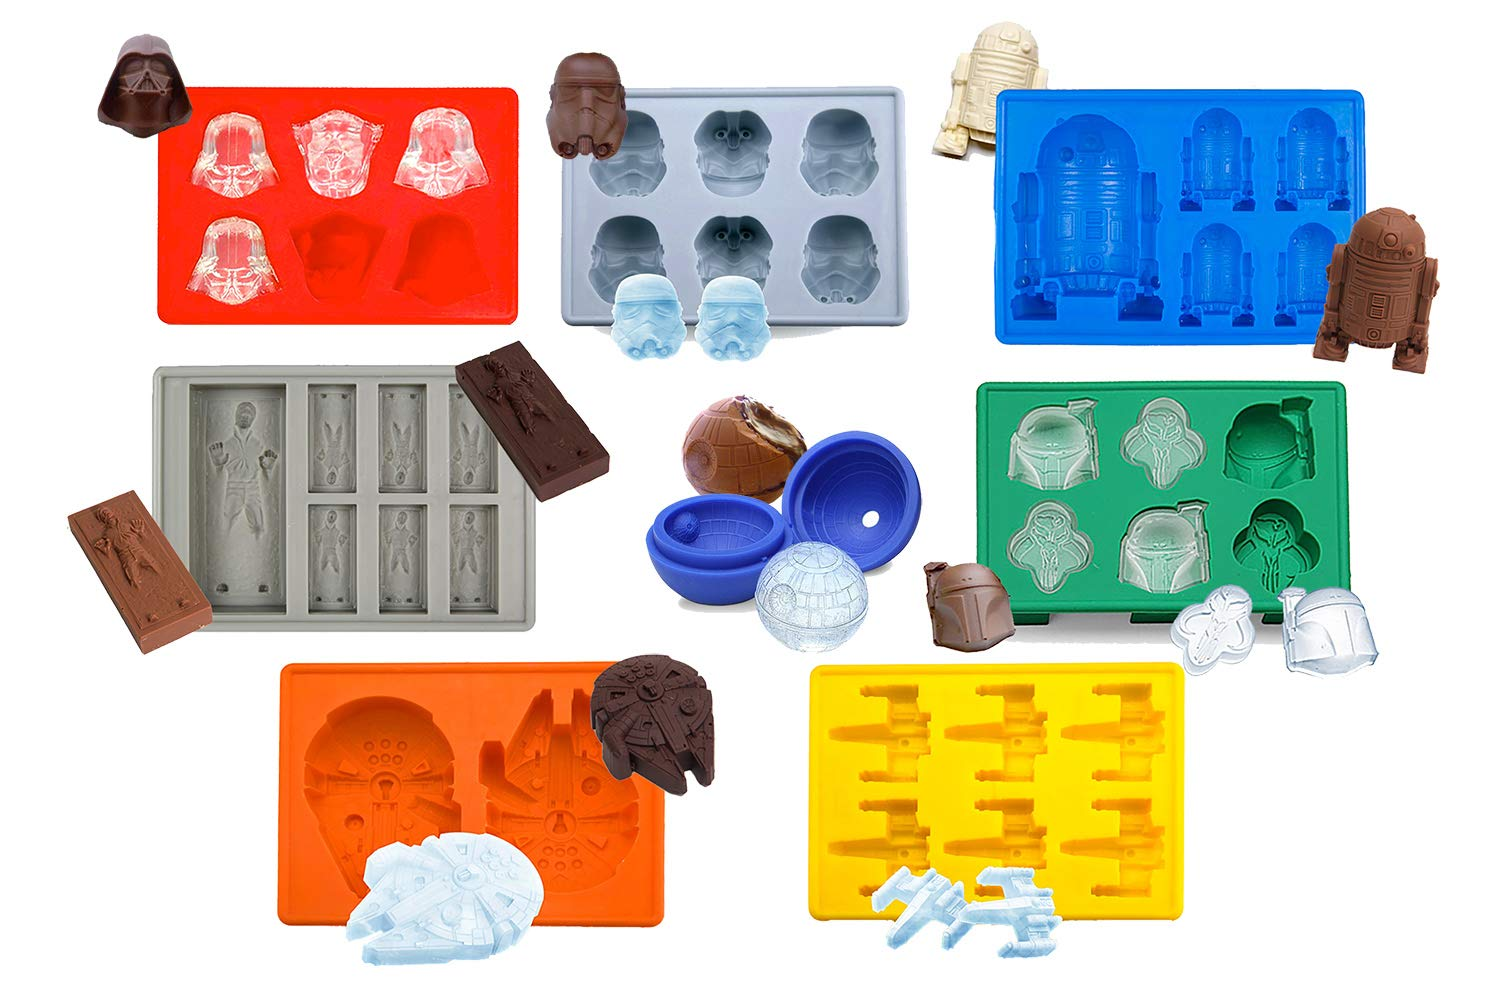 Set of 8 Star Wars Silicone Ice Trays / Chocolate Molds: Stormtrooper, Darth Vader, X-Wing Fighter, Millennium Falcon, R2-D2, Han Solo, Boba Fett, and Death Star by Unknown